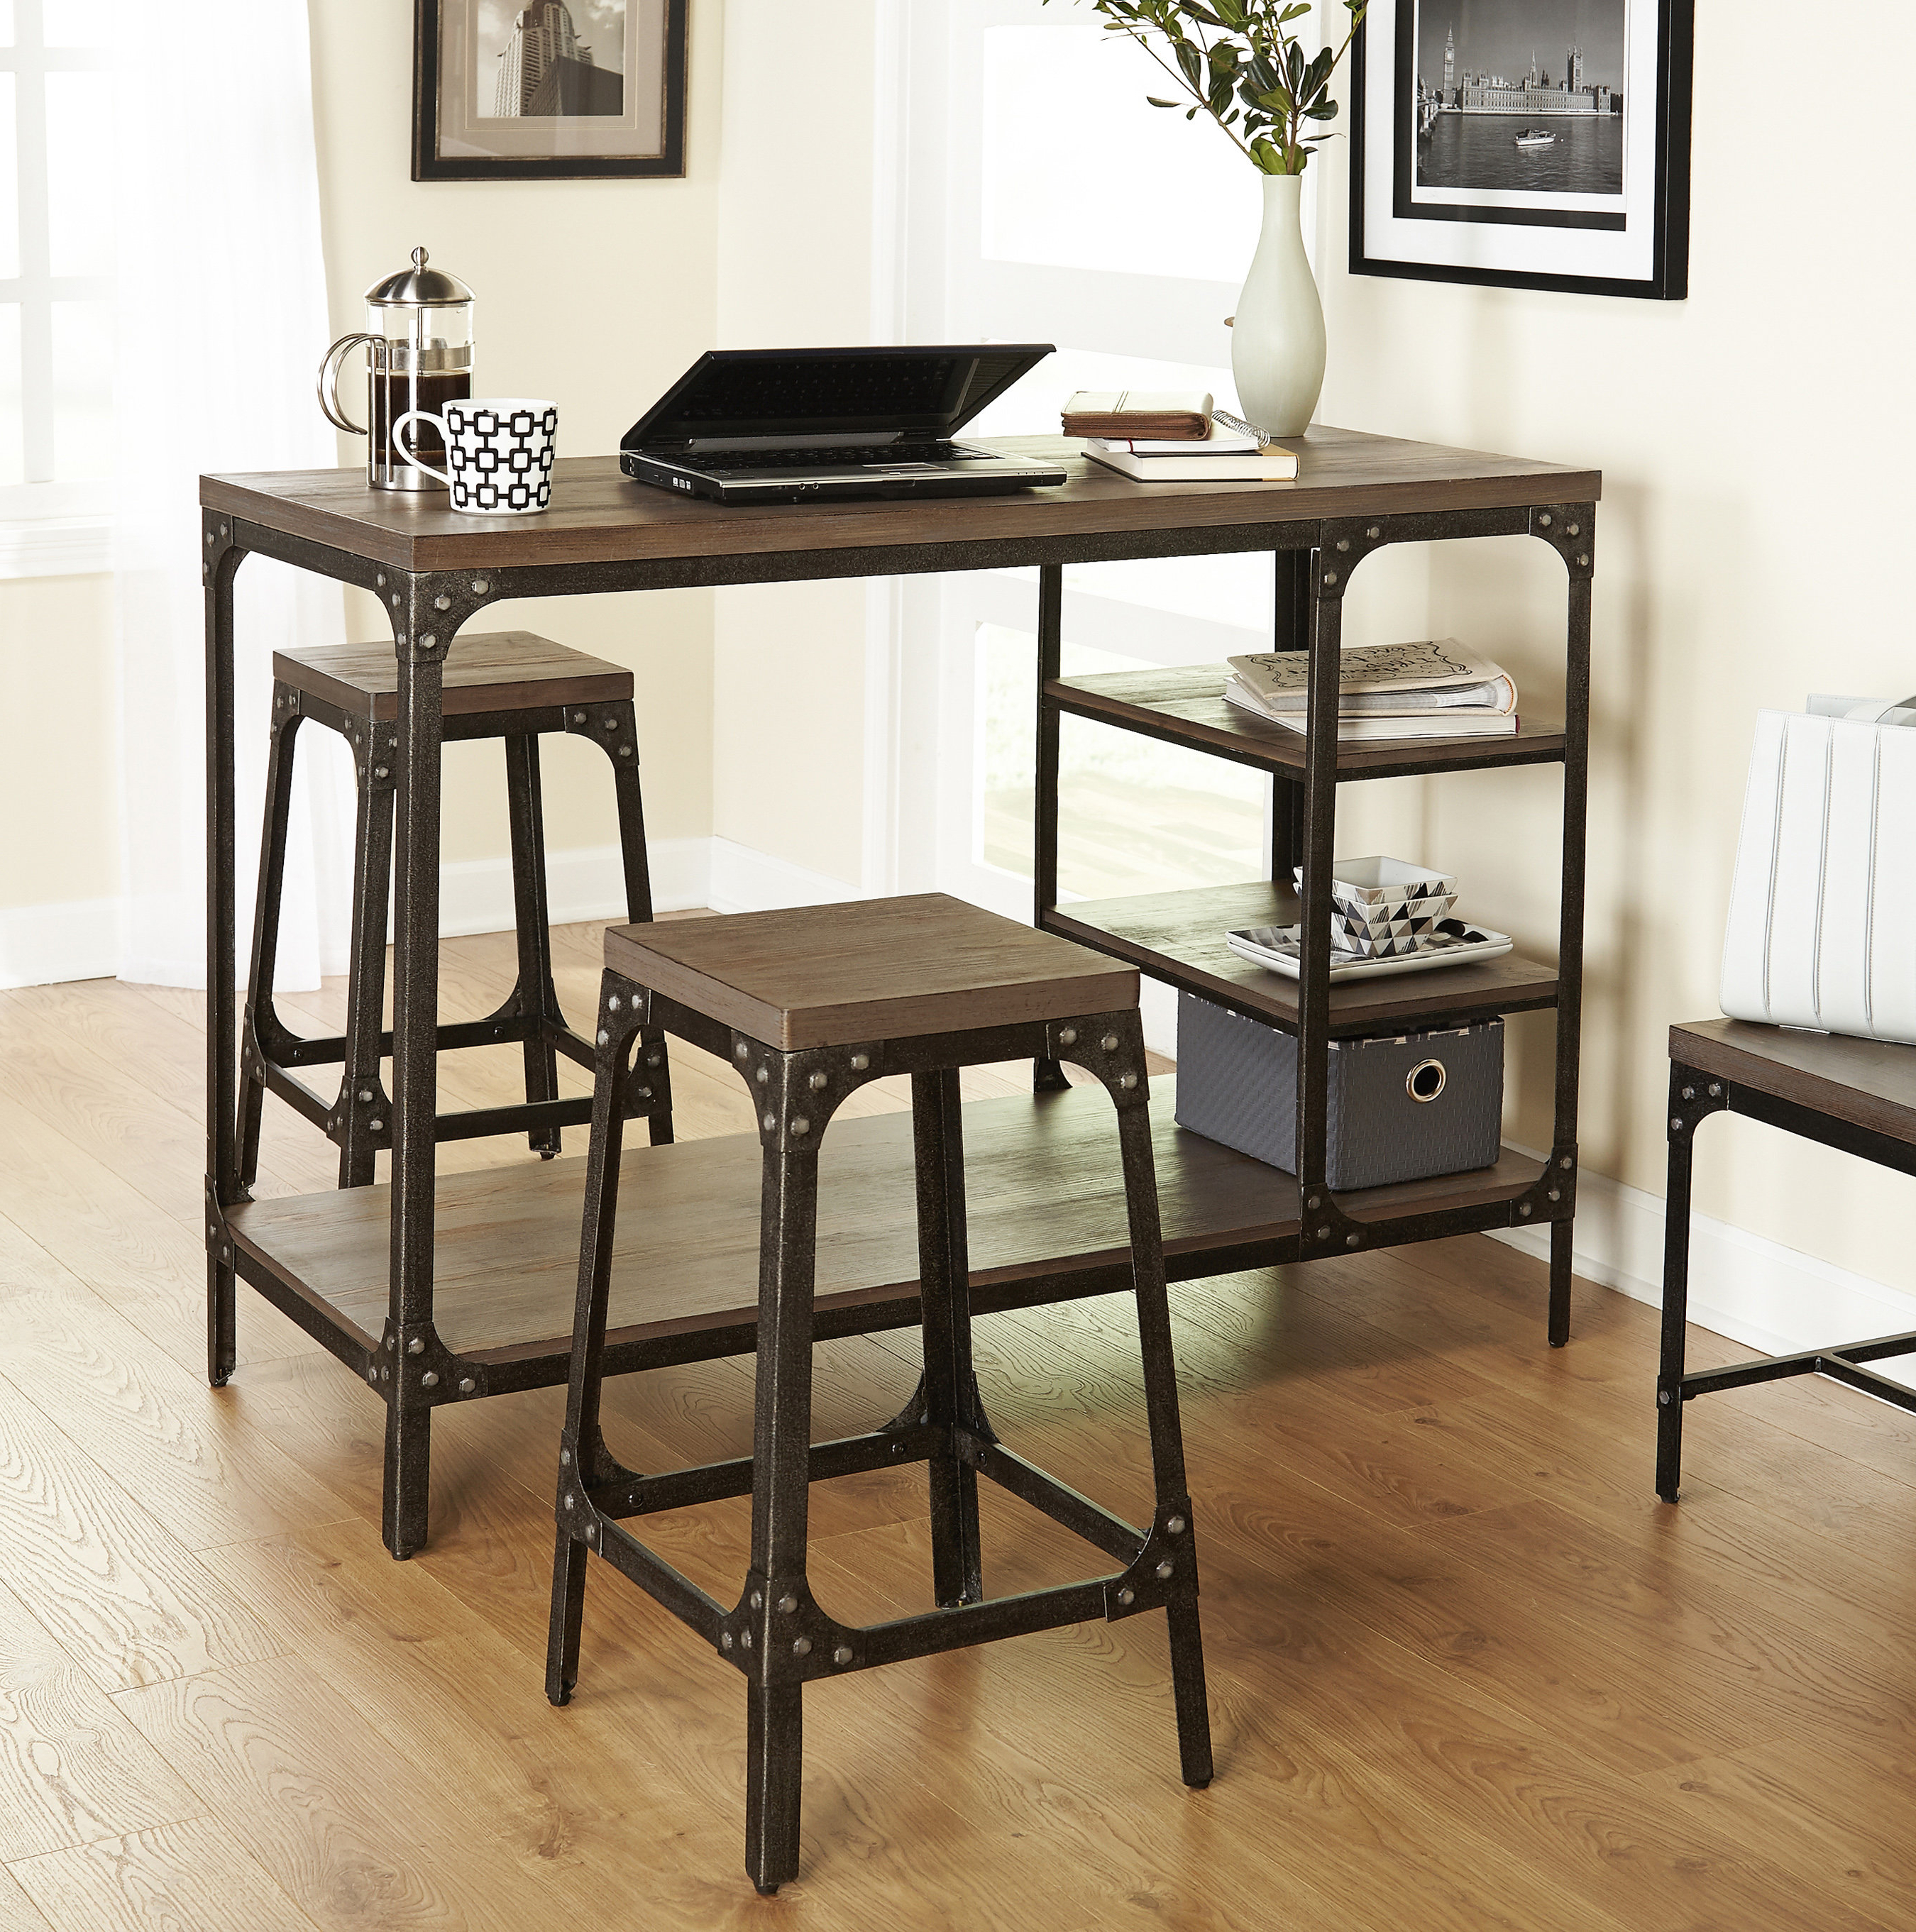 Preferred 3 Piece Breakfast Dining Sets Pertaining To Terence 3 Piece Breakfast Nook Dining Set (View 19 of 20)